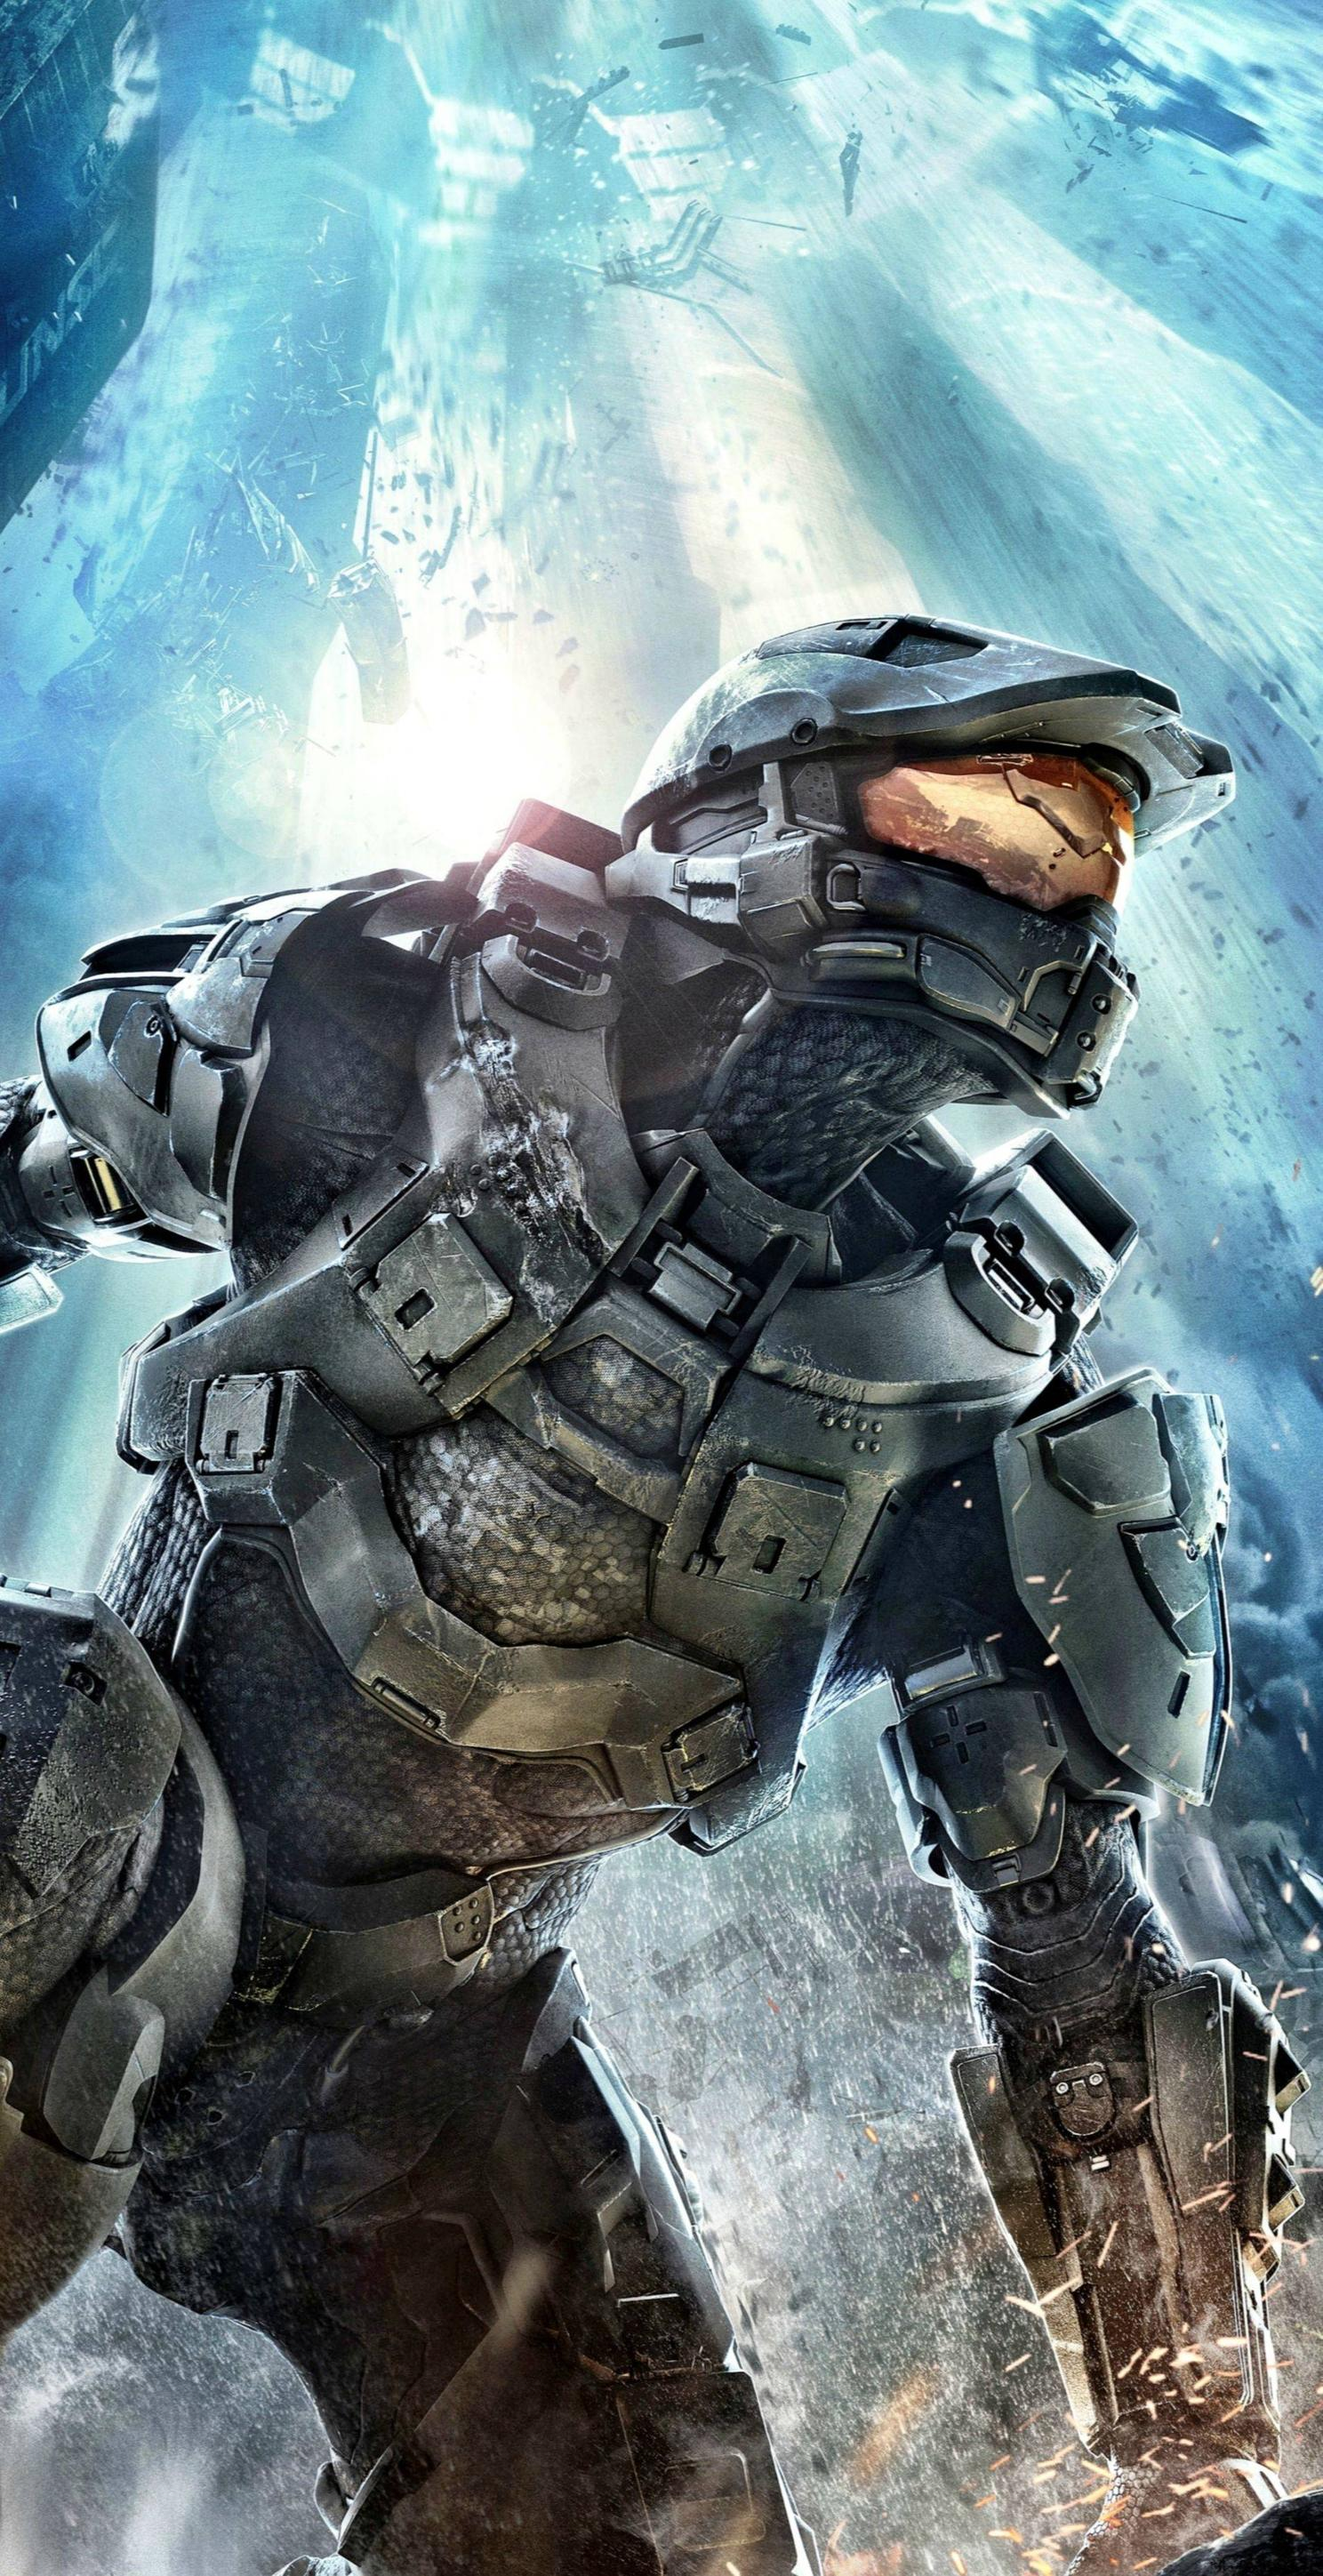 Hd wallpaper for iphone 5s - Halo 4 Iphone 5 Retina Wallpaper Imgur